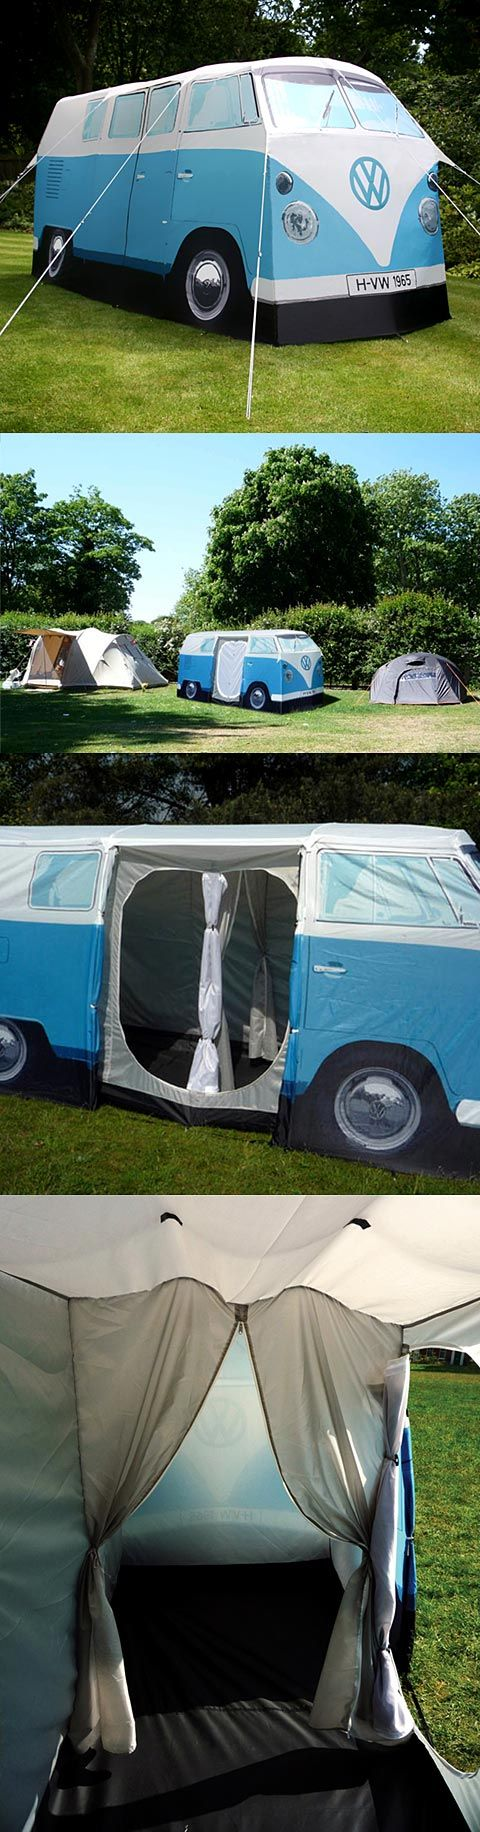 VW Camper Van Tent. I want this! No, I NEED this!